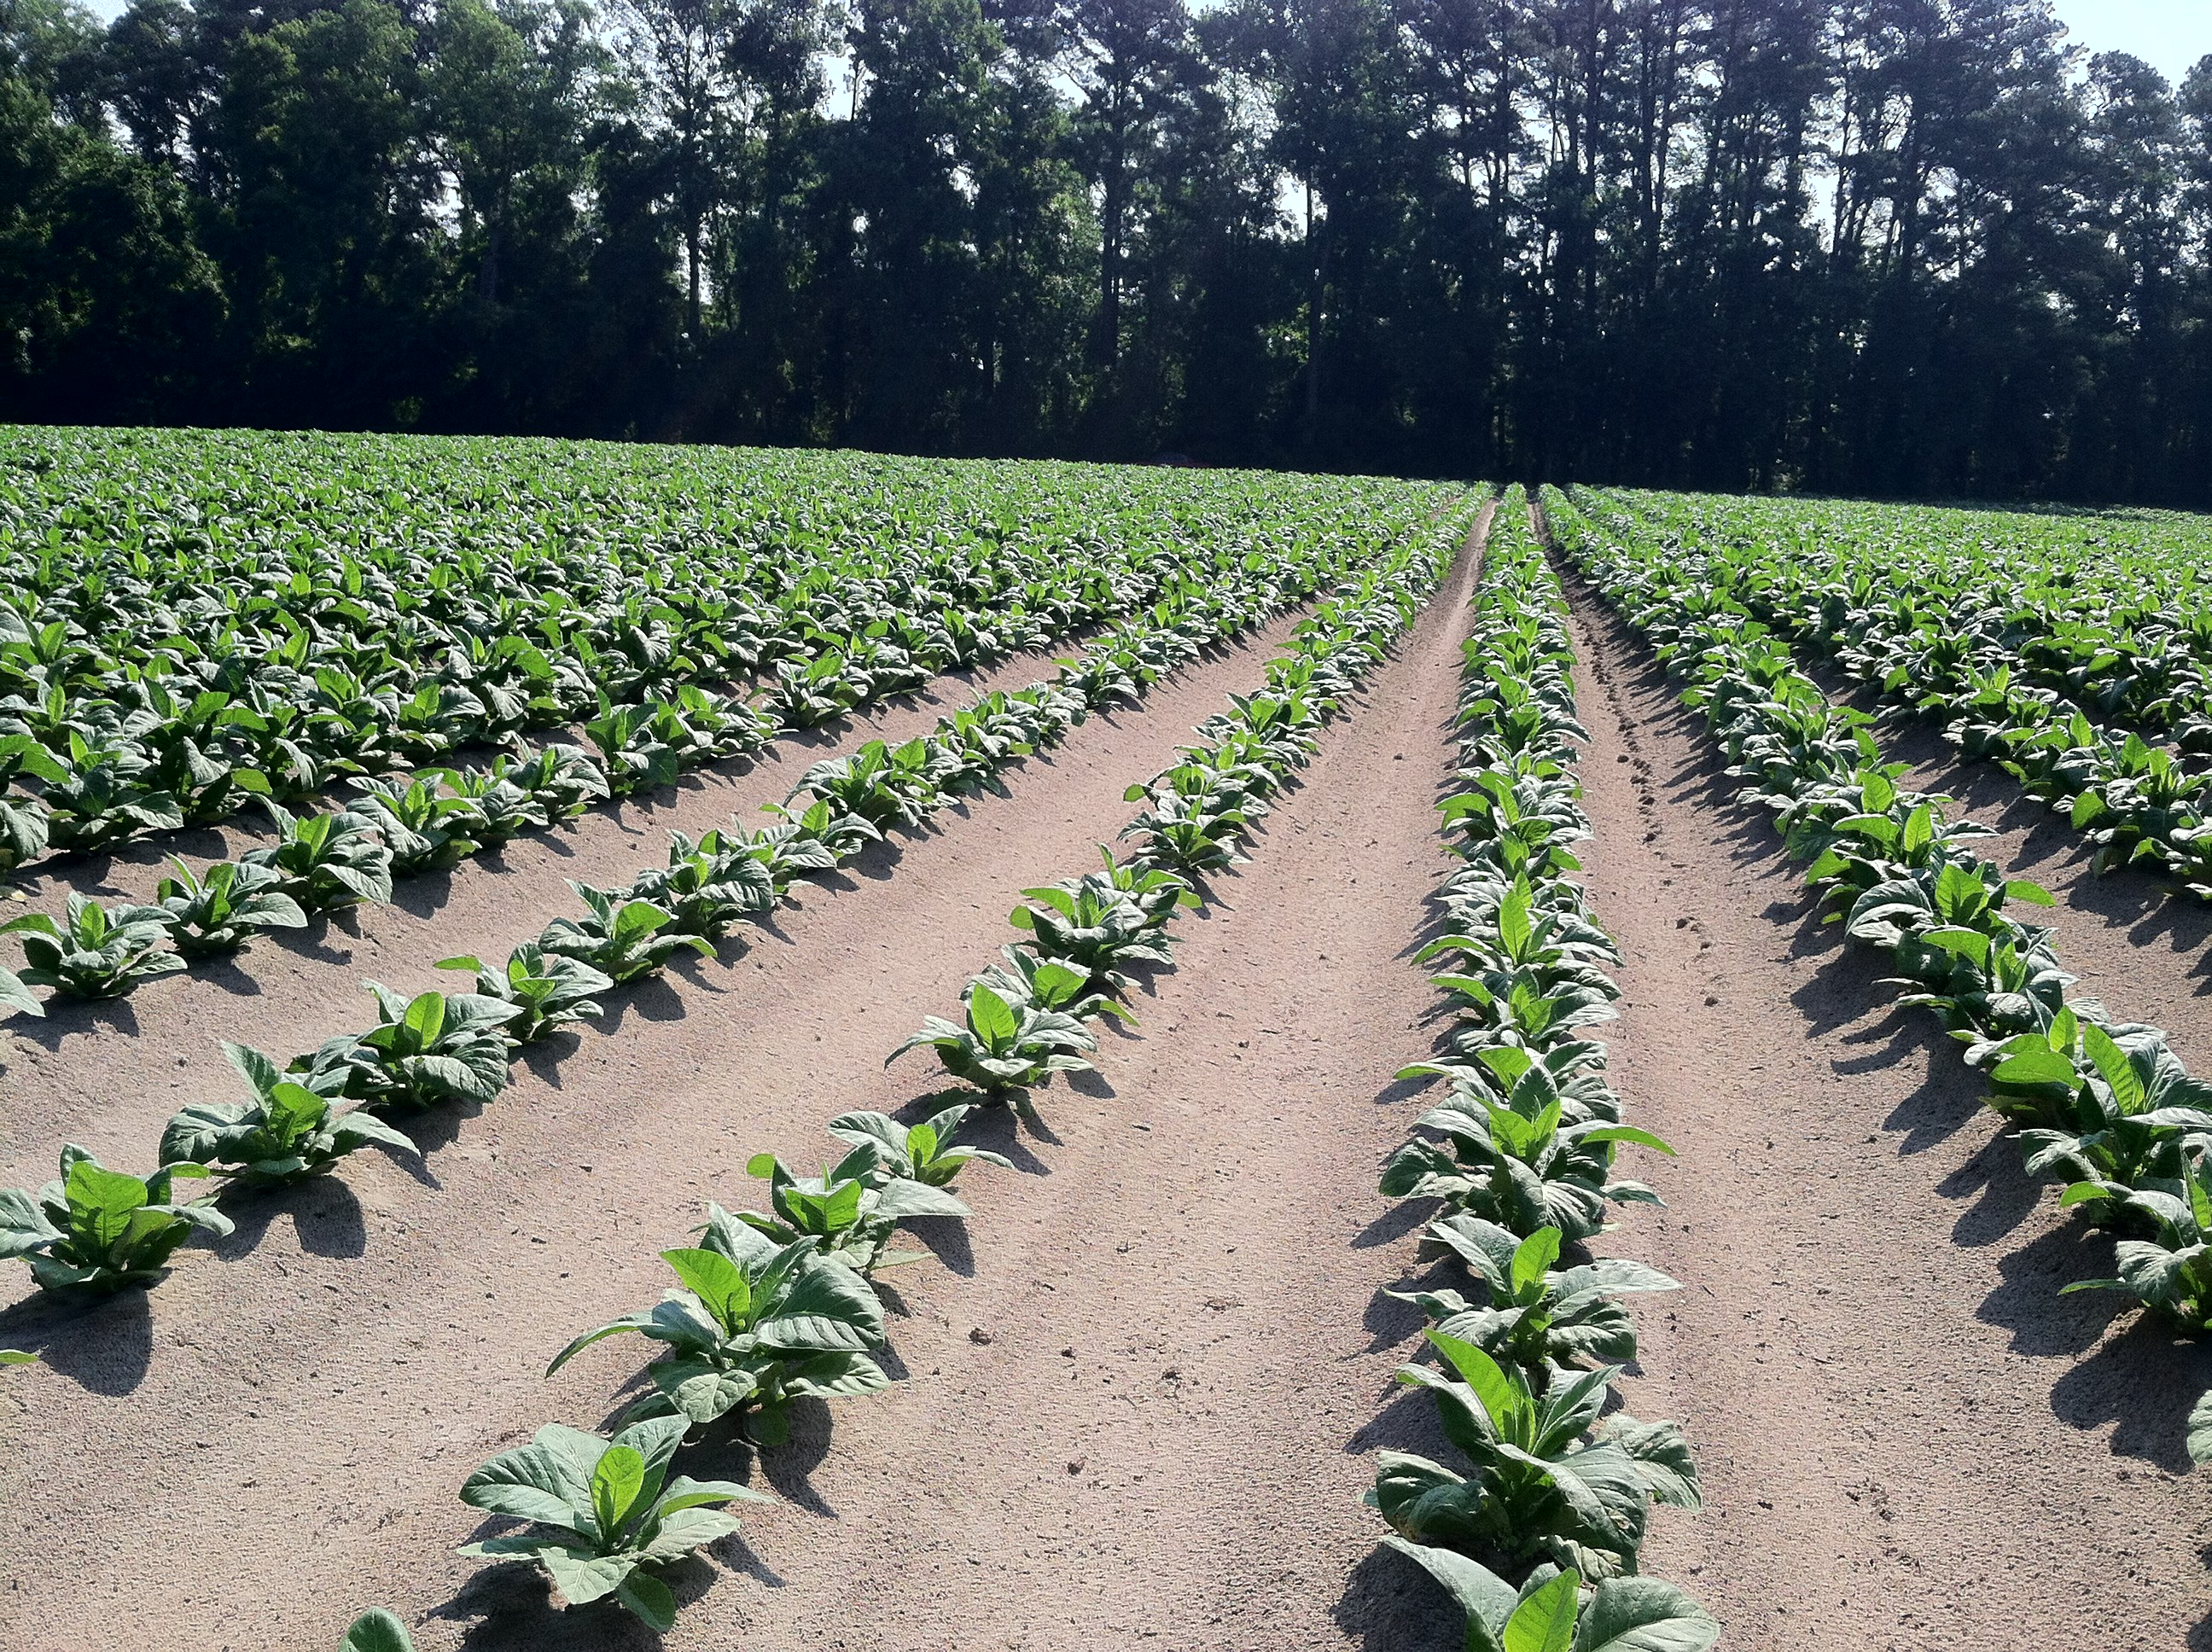 Uneven Growth of Tobacco